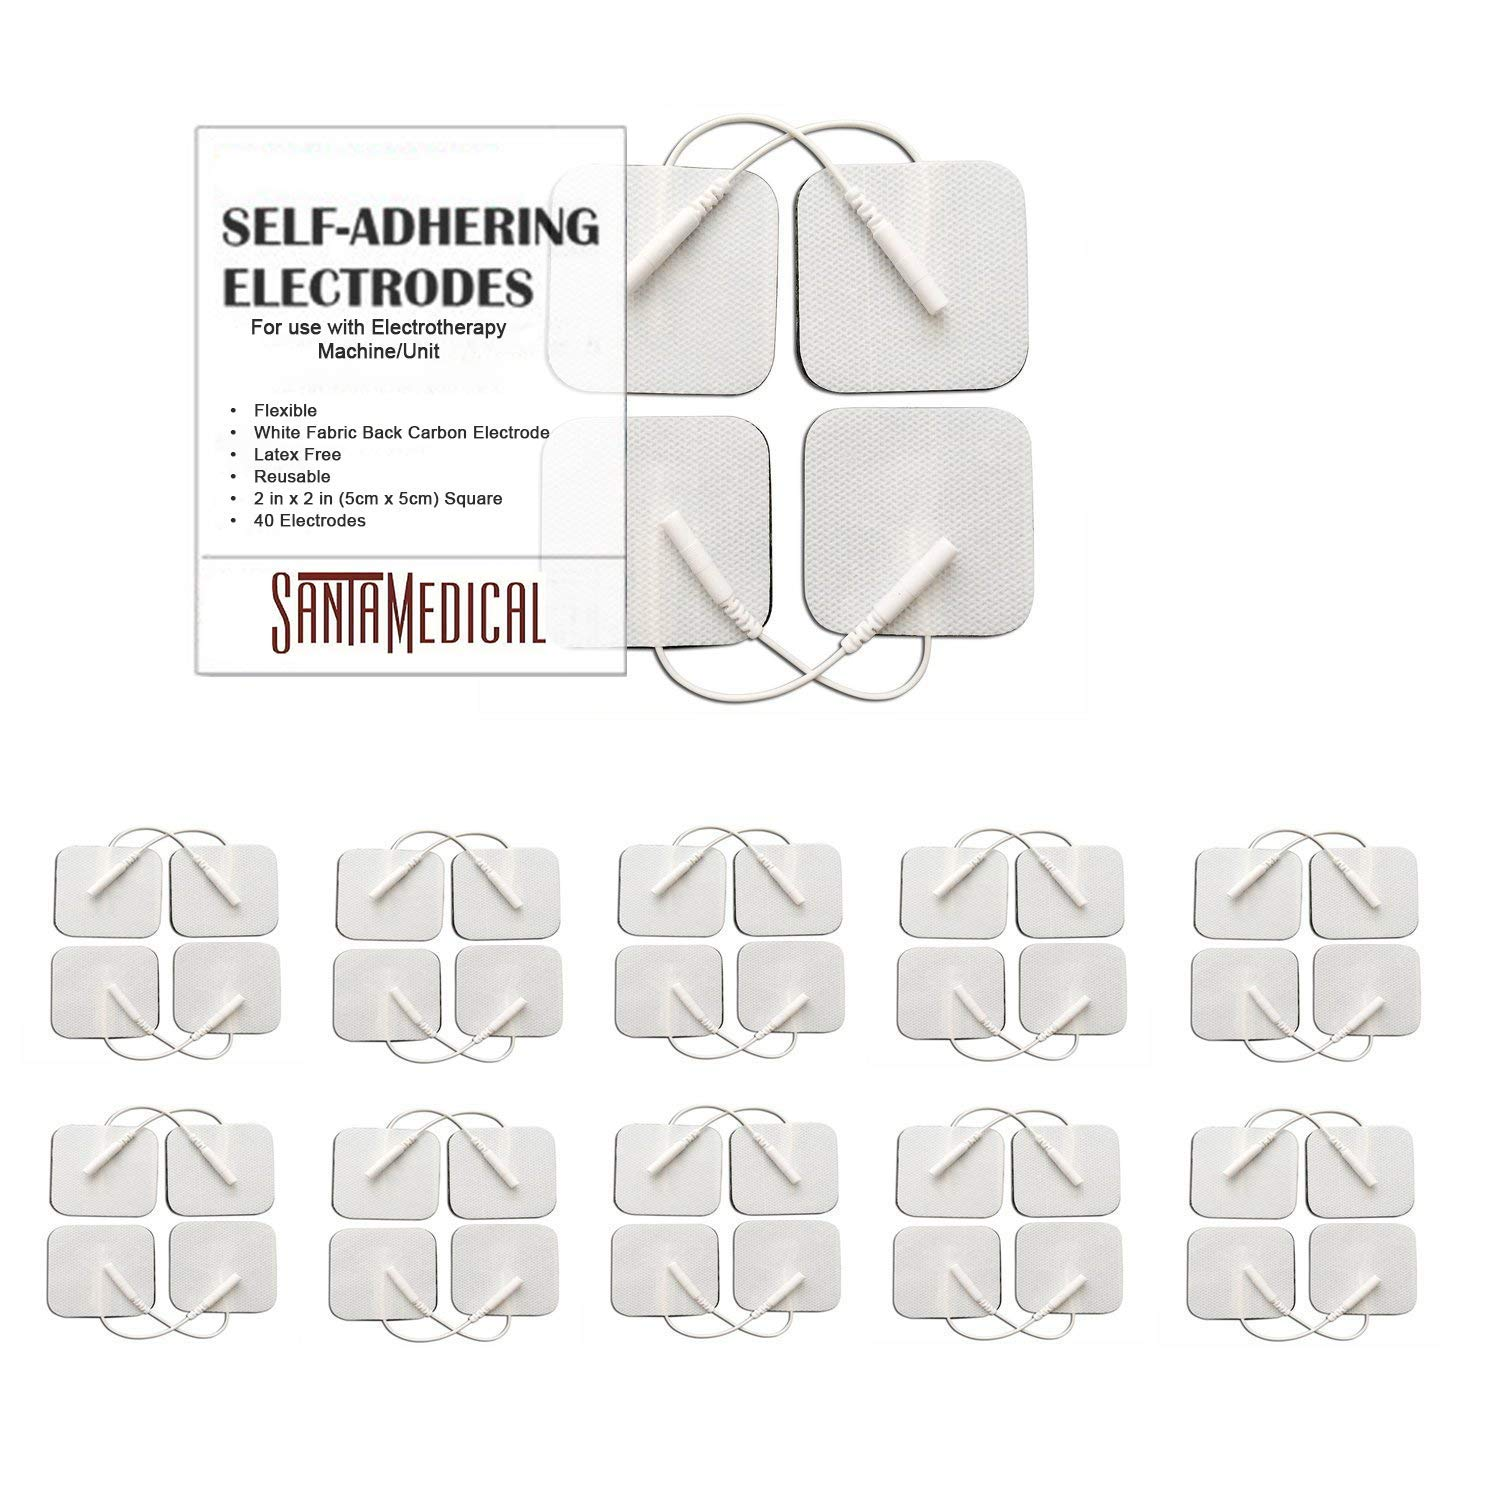 TENS Unit Pads Electrodes 2x2 40 Pcs Replacement Reusable Premium Pads Electrode Patches for Electrotherapy - Non Irritating Design by Santamedical